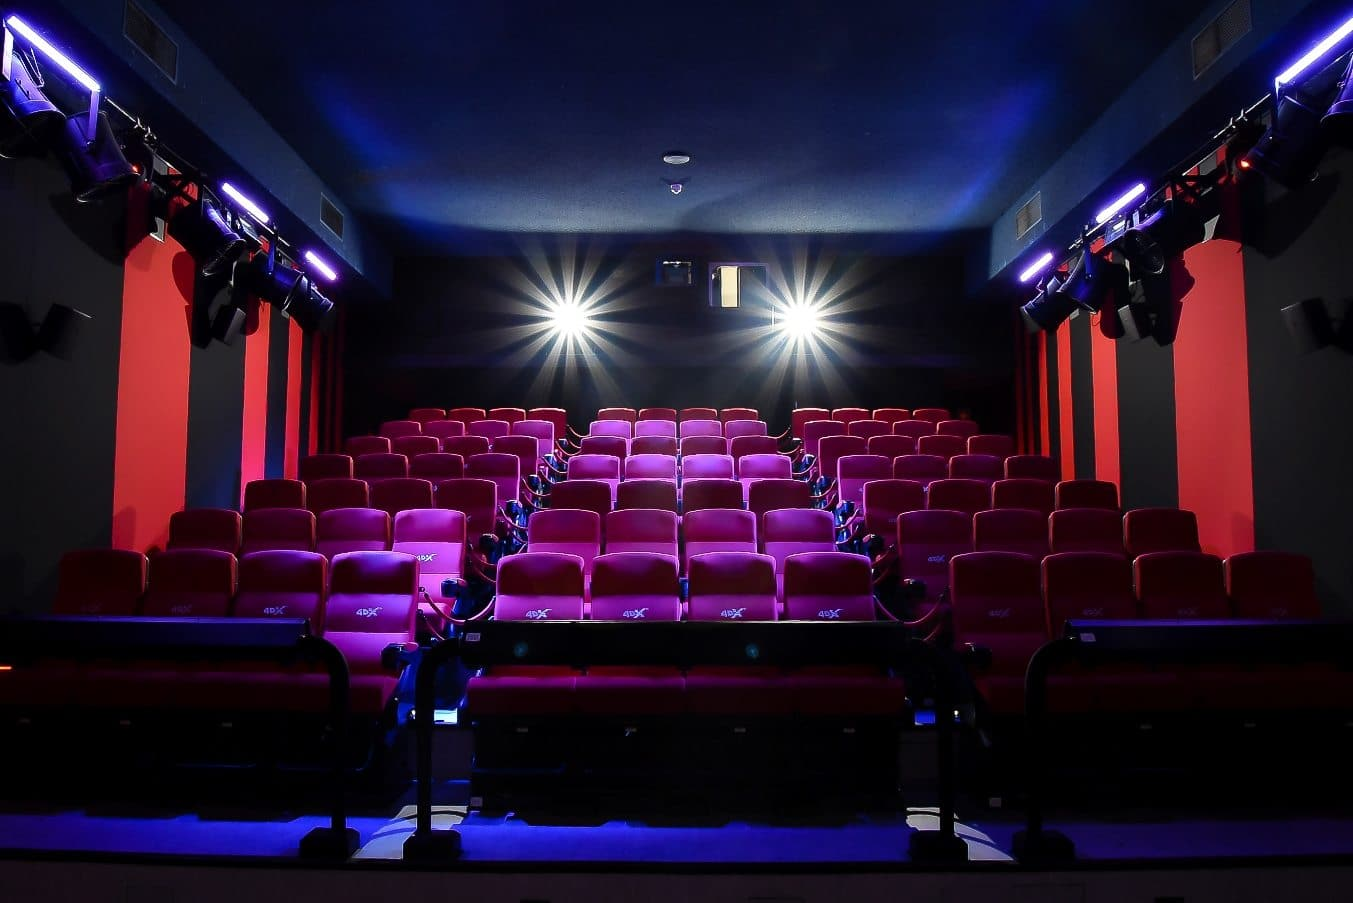 Essex Cinemas - Delivering the best movie experience to the greater Essex and Burlington areas! We are an all digital movie theater with stadium seating, state-of-the-art sound, and home of the T-Rex Theater, Vermont's biggest and only large format theater!